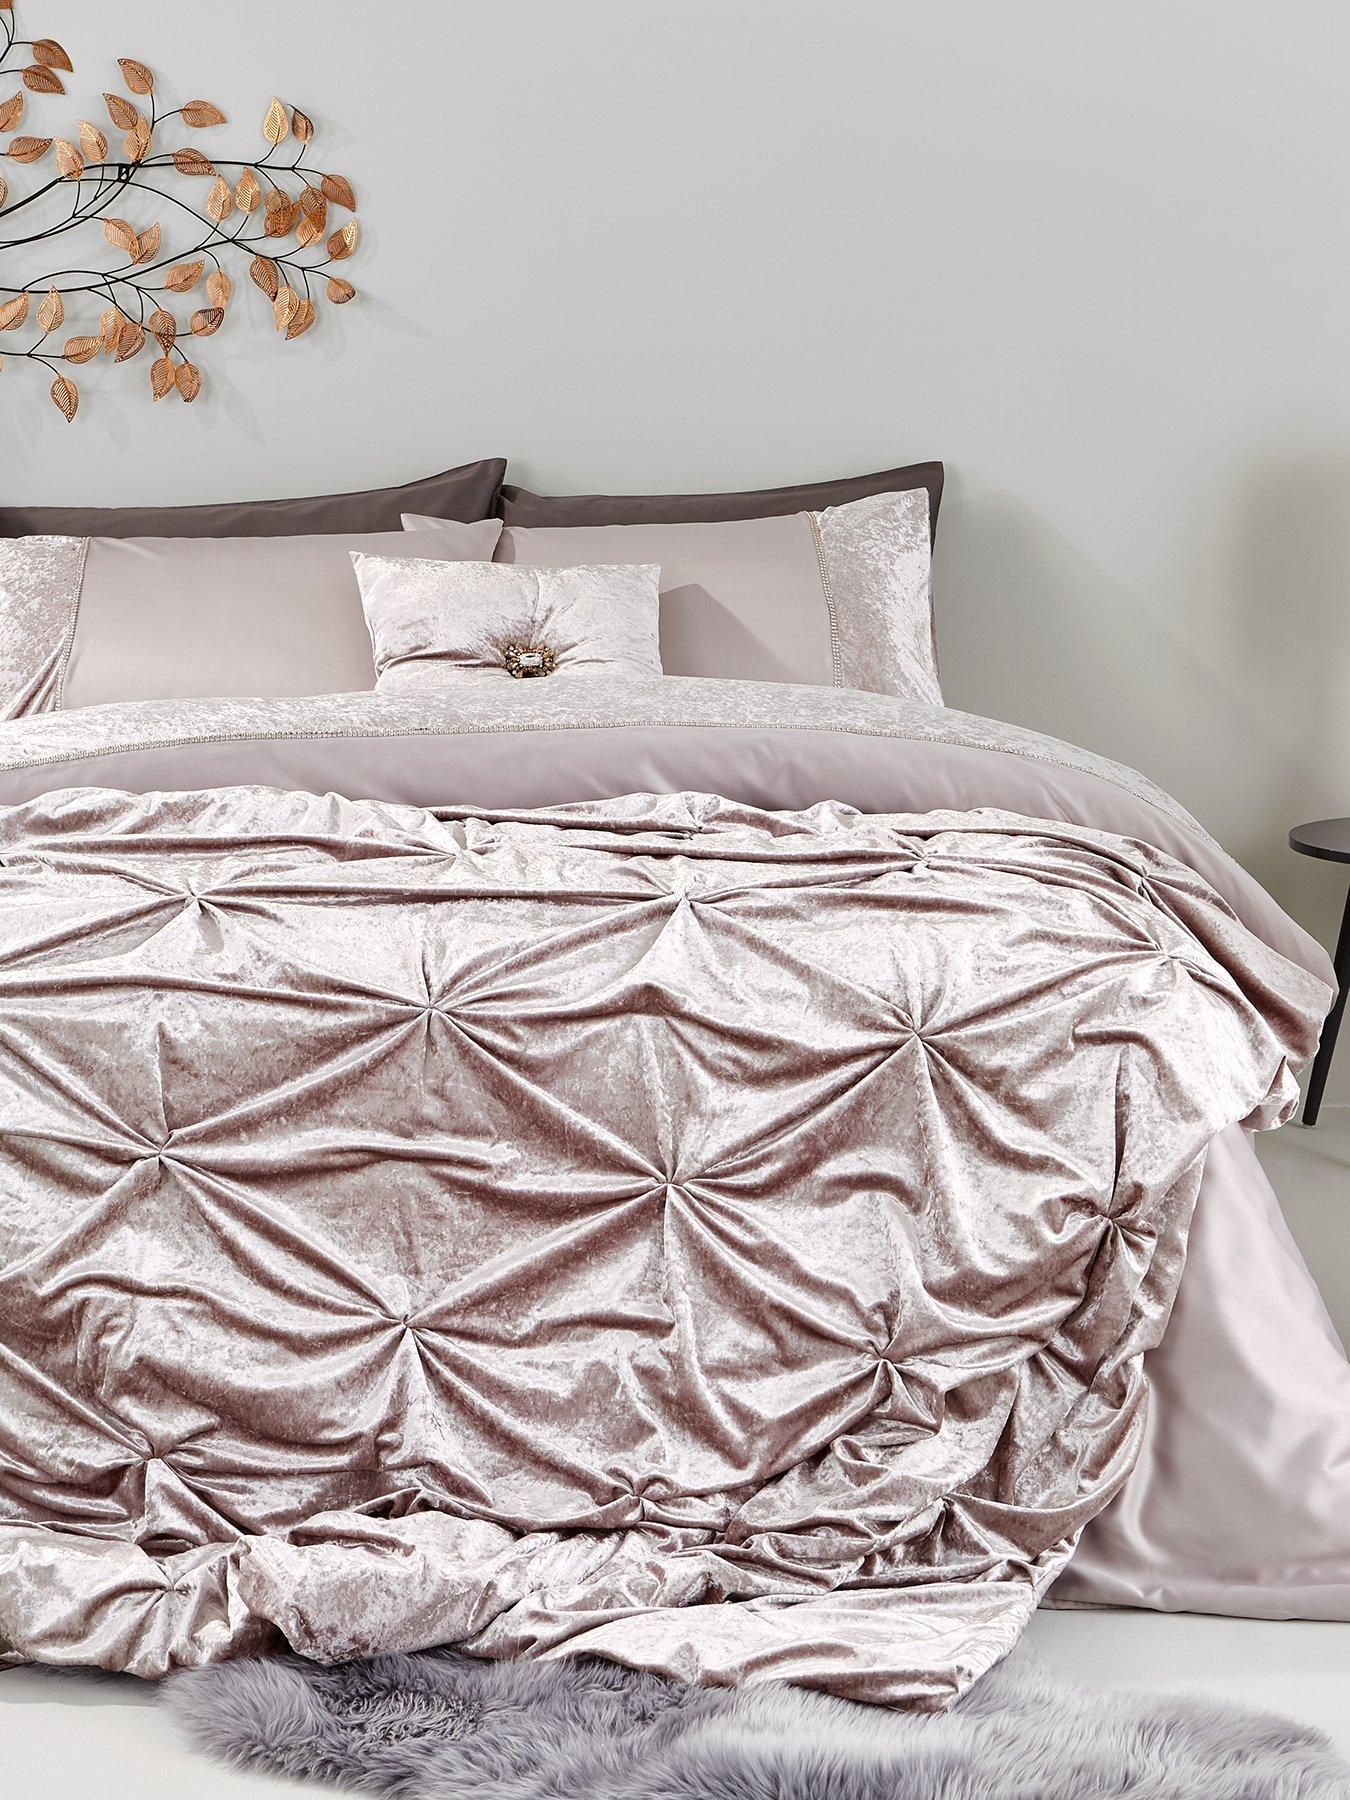 LUXURIOUS PINTUCK ALEXANDER PANEL POLLY//COTTON DUVET QUILT COVER SET IN ALL SIZE